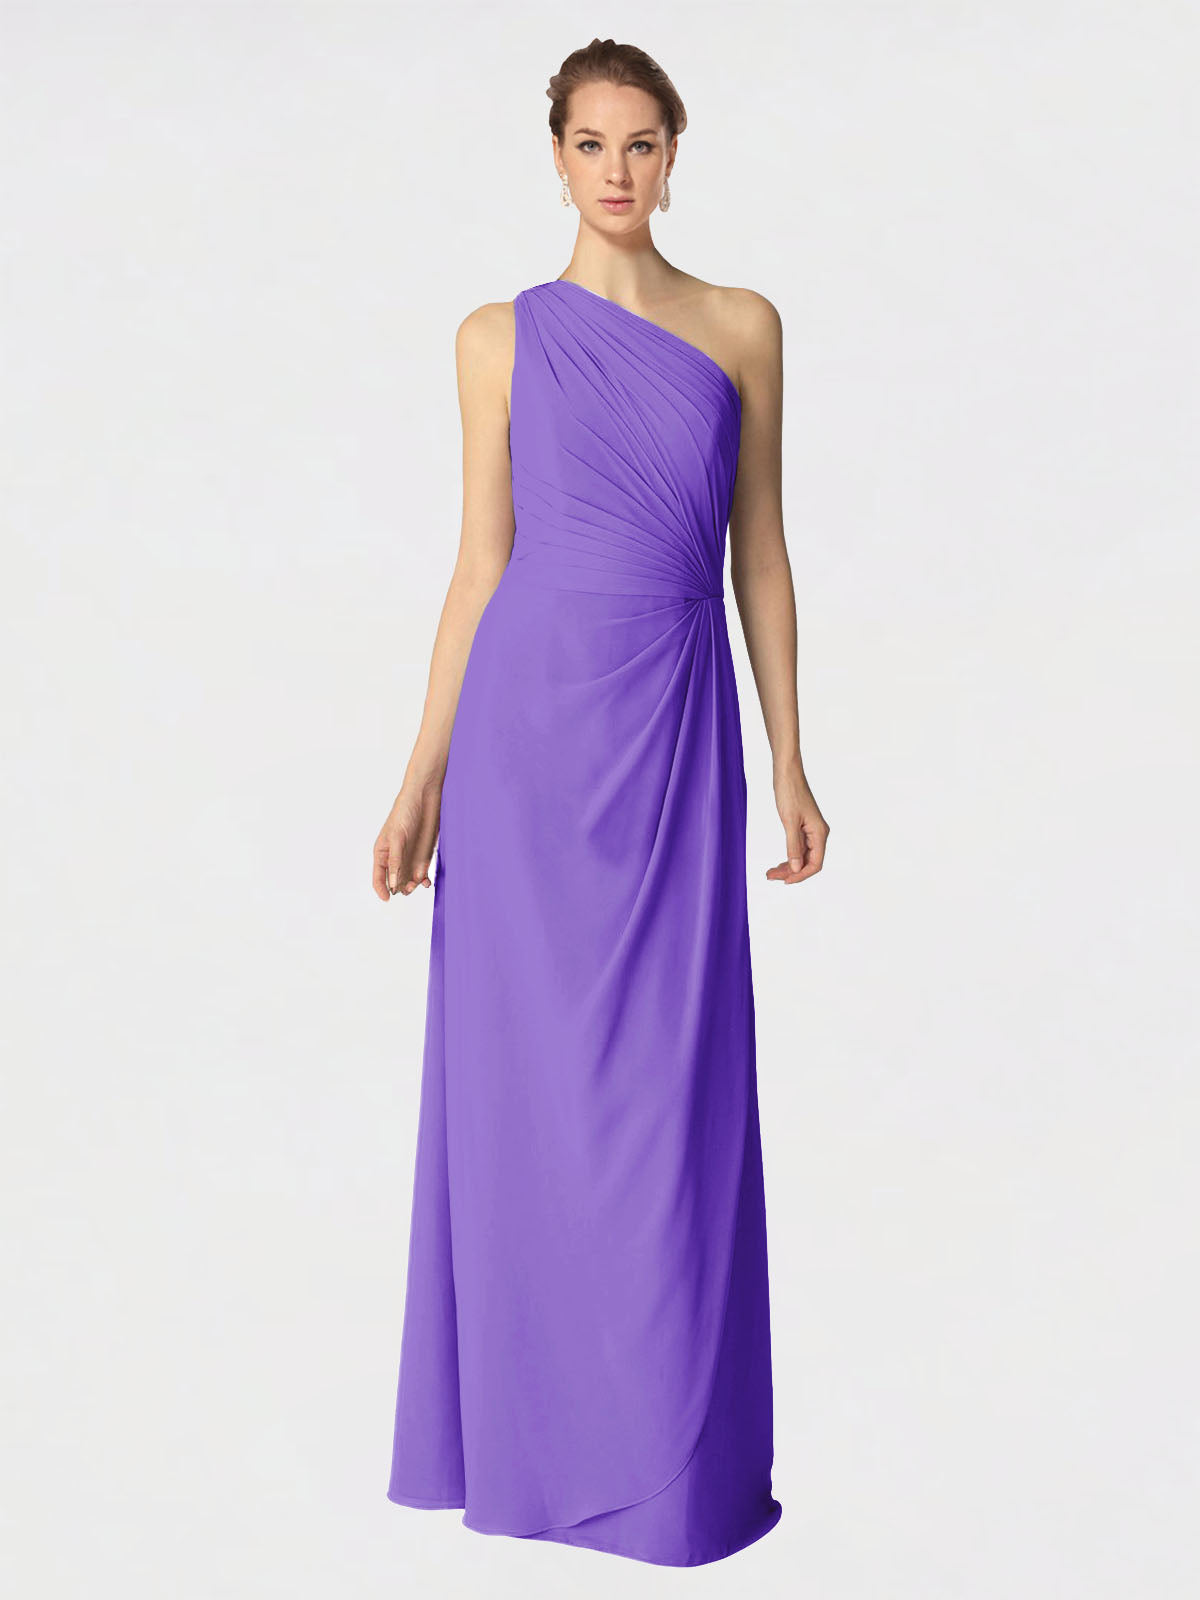 Long A-Line One Shoulder Sleeveless Tahiti Chiffon Bridesmaid Dress Aurora